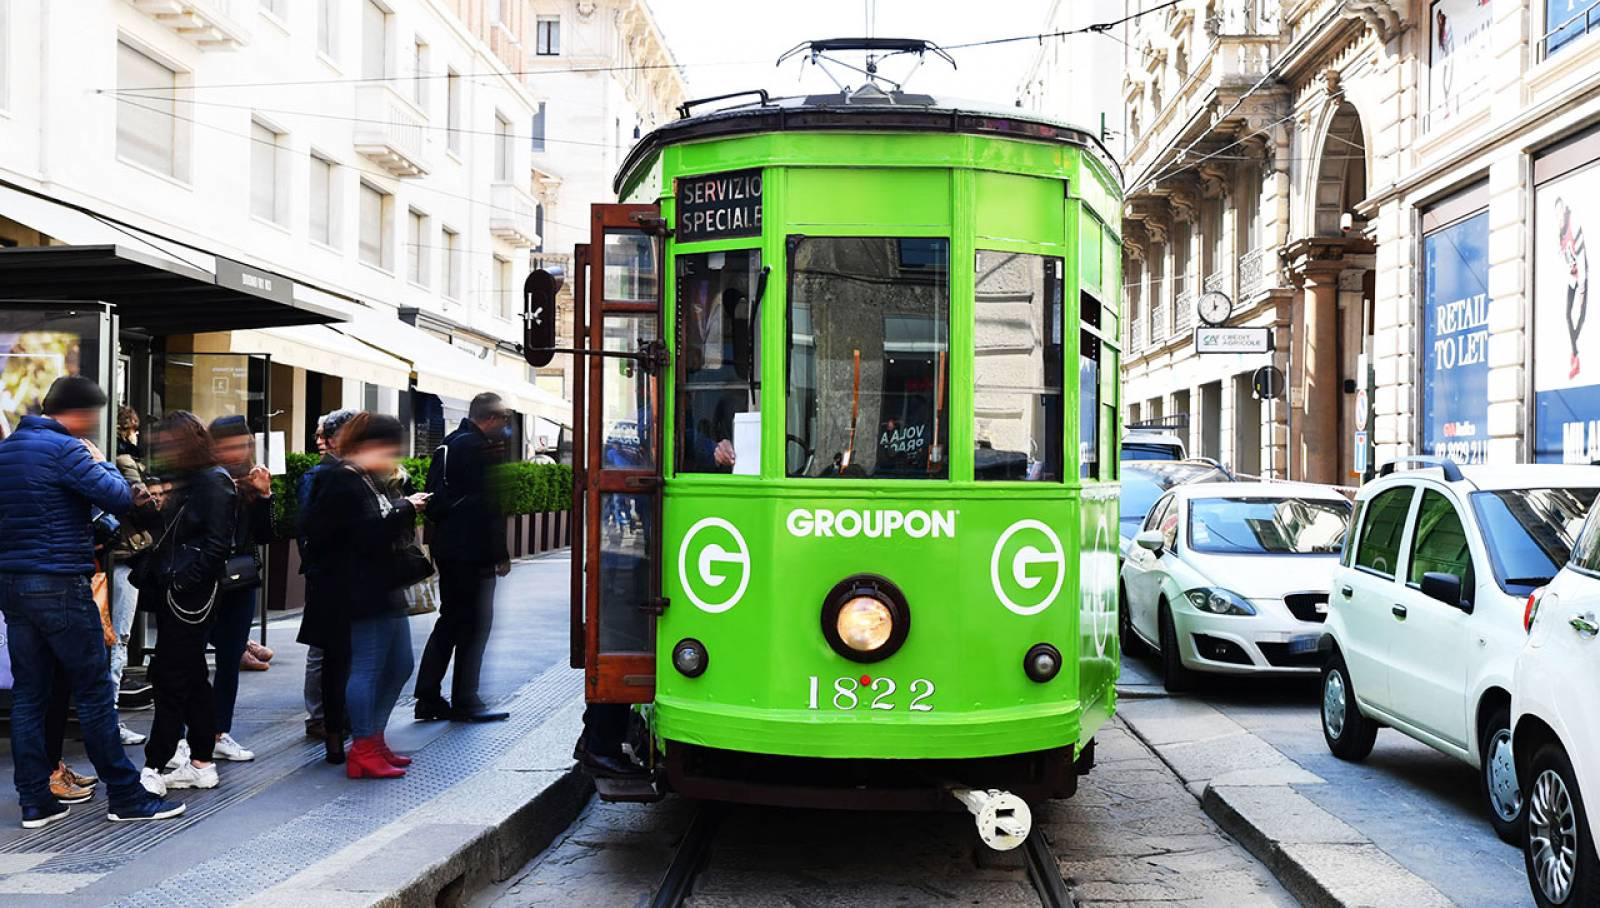 IGPDecaux Milan special tram for Groupon